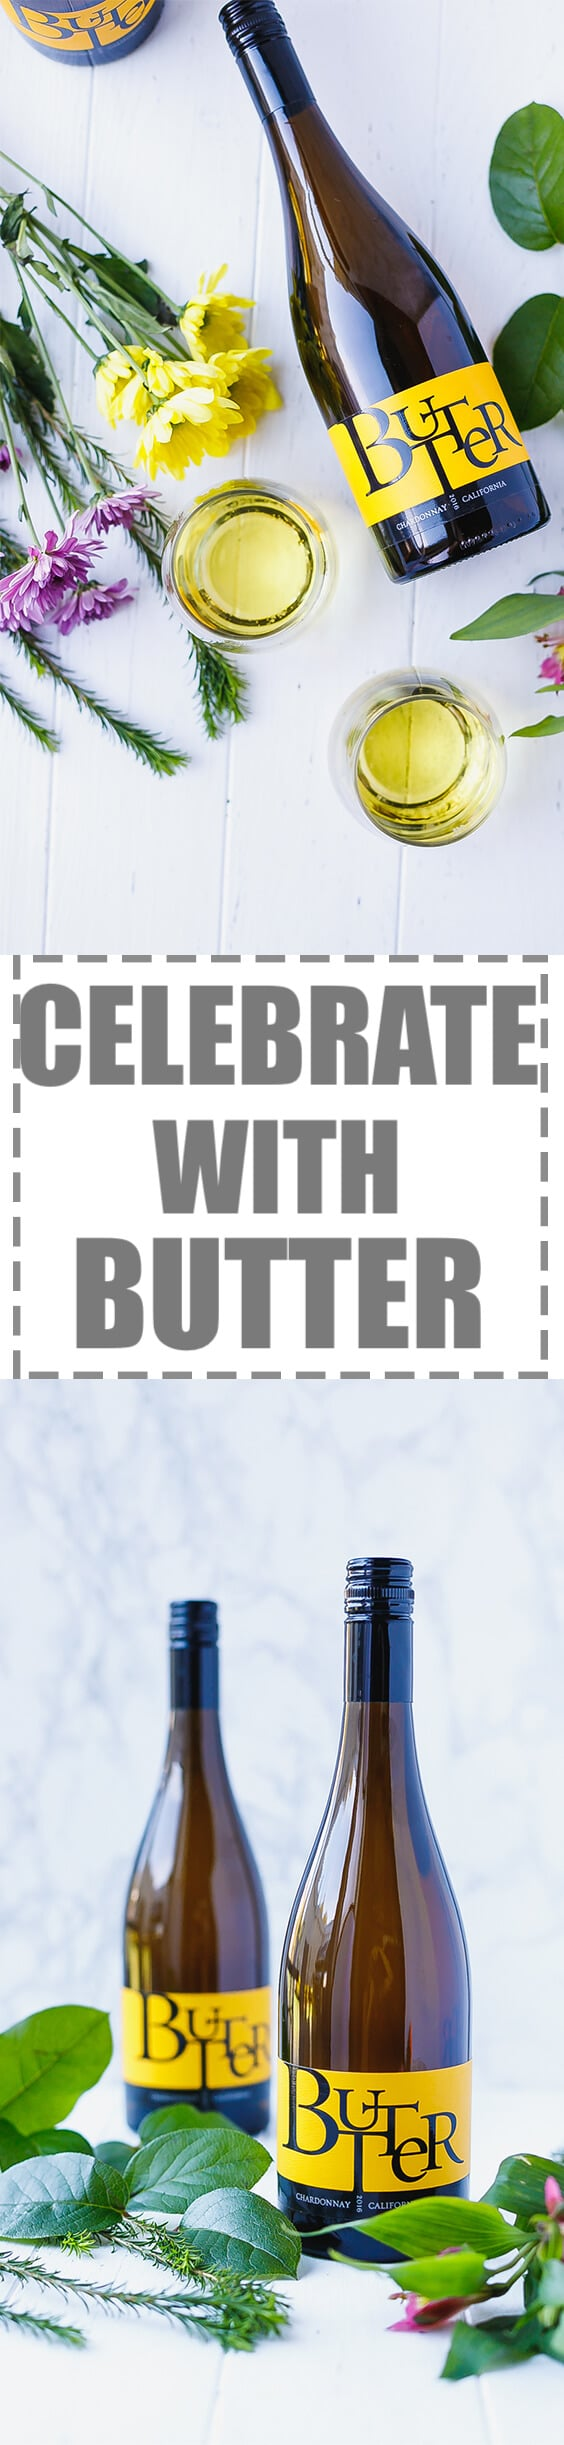 The Perfect Mother's Day With Butter - one of the few things that can make my mother's day extra special - JaM Cellars Butter Chardonnay. This wine is so smooth and fruity! It makes the perfect Mother's Day Gift!